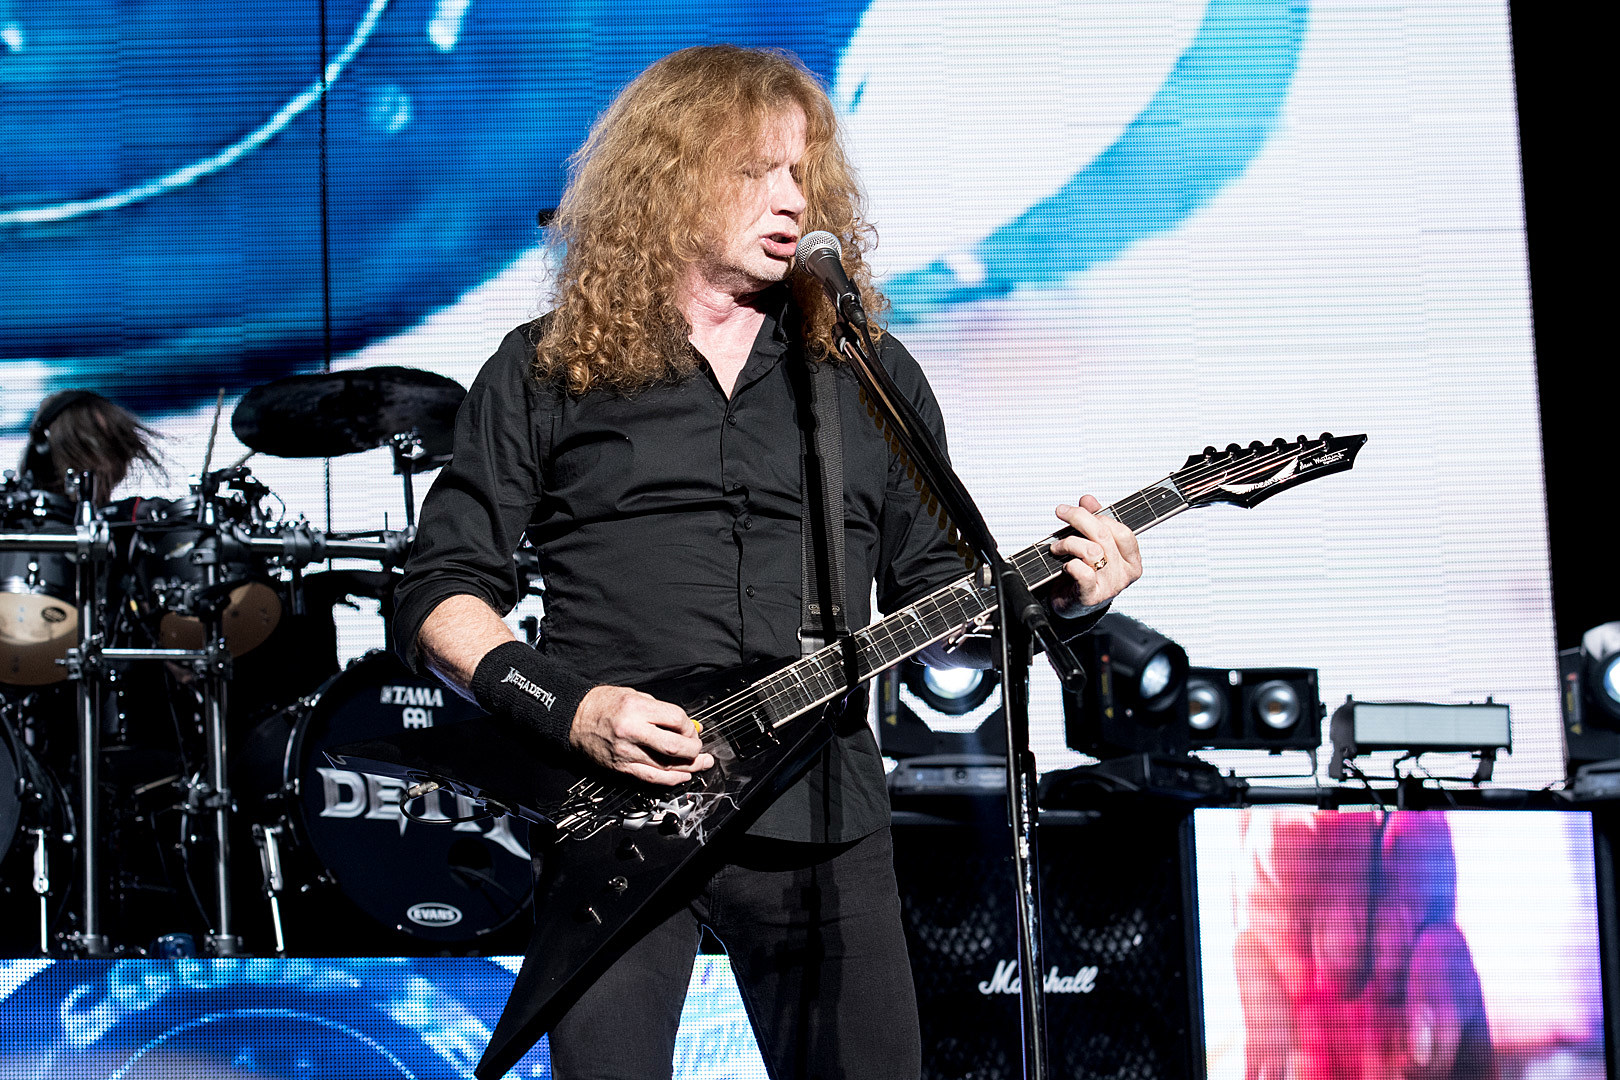 Megadeth's Dave Mustaine Thanks 'Best Fans in the World' for Support in Cancer Fight